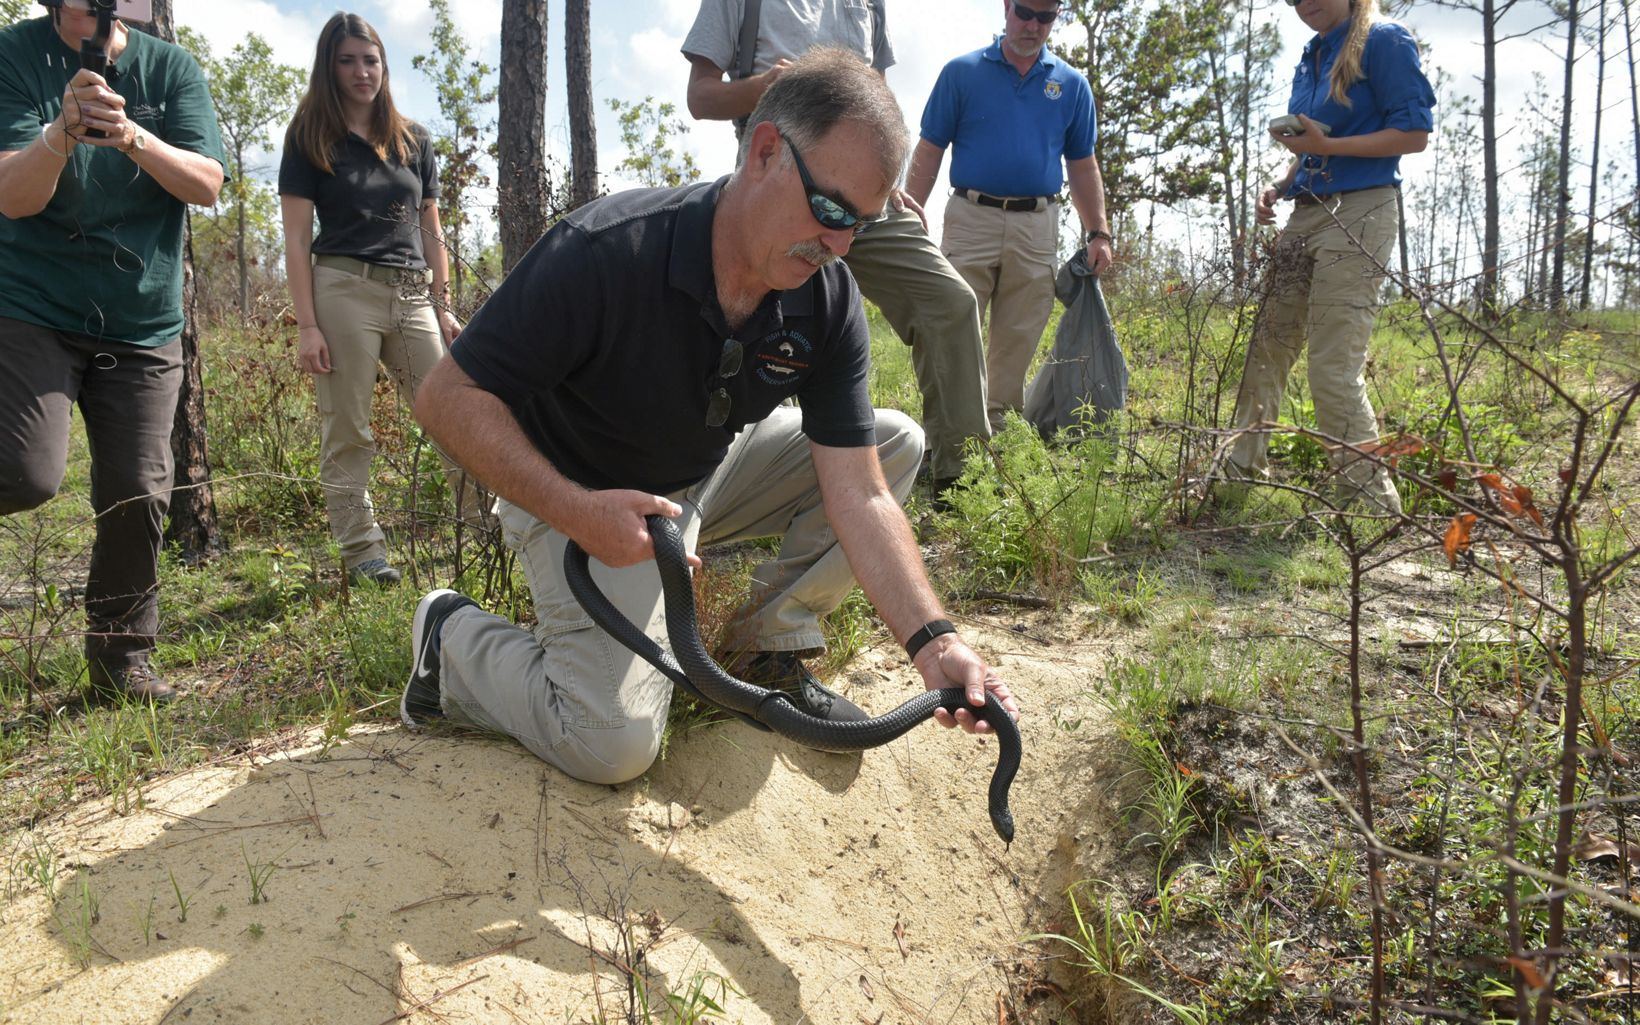 Easing the indigo snake into a gopher tortoise burrow on the preserve.